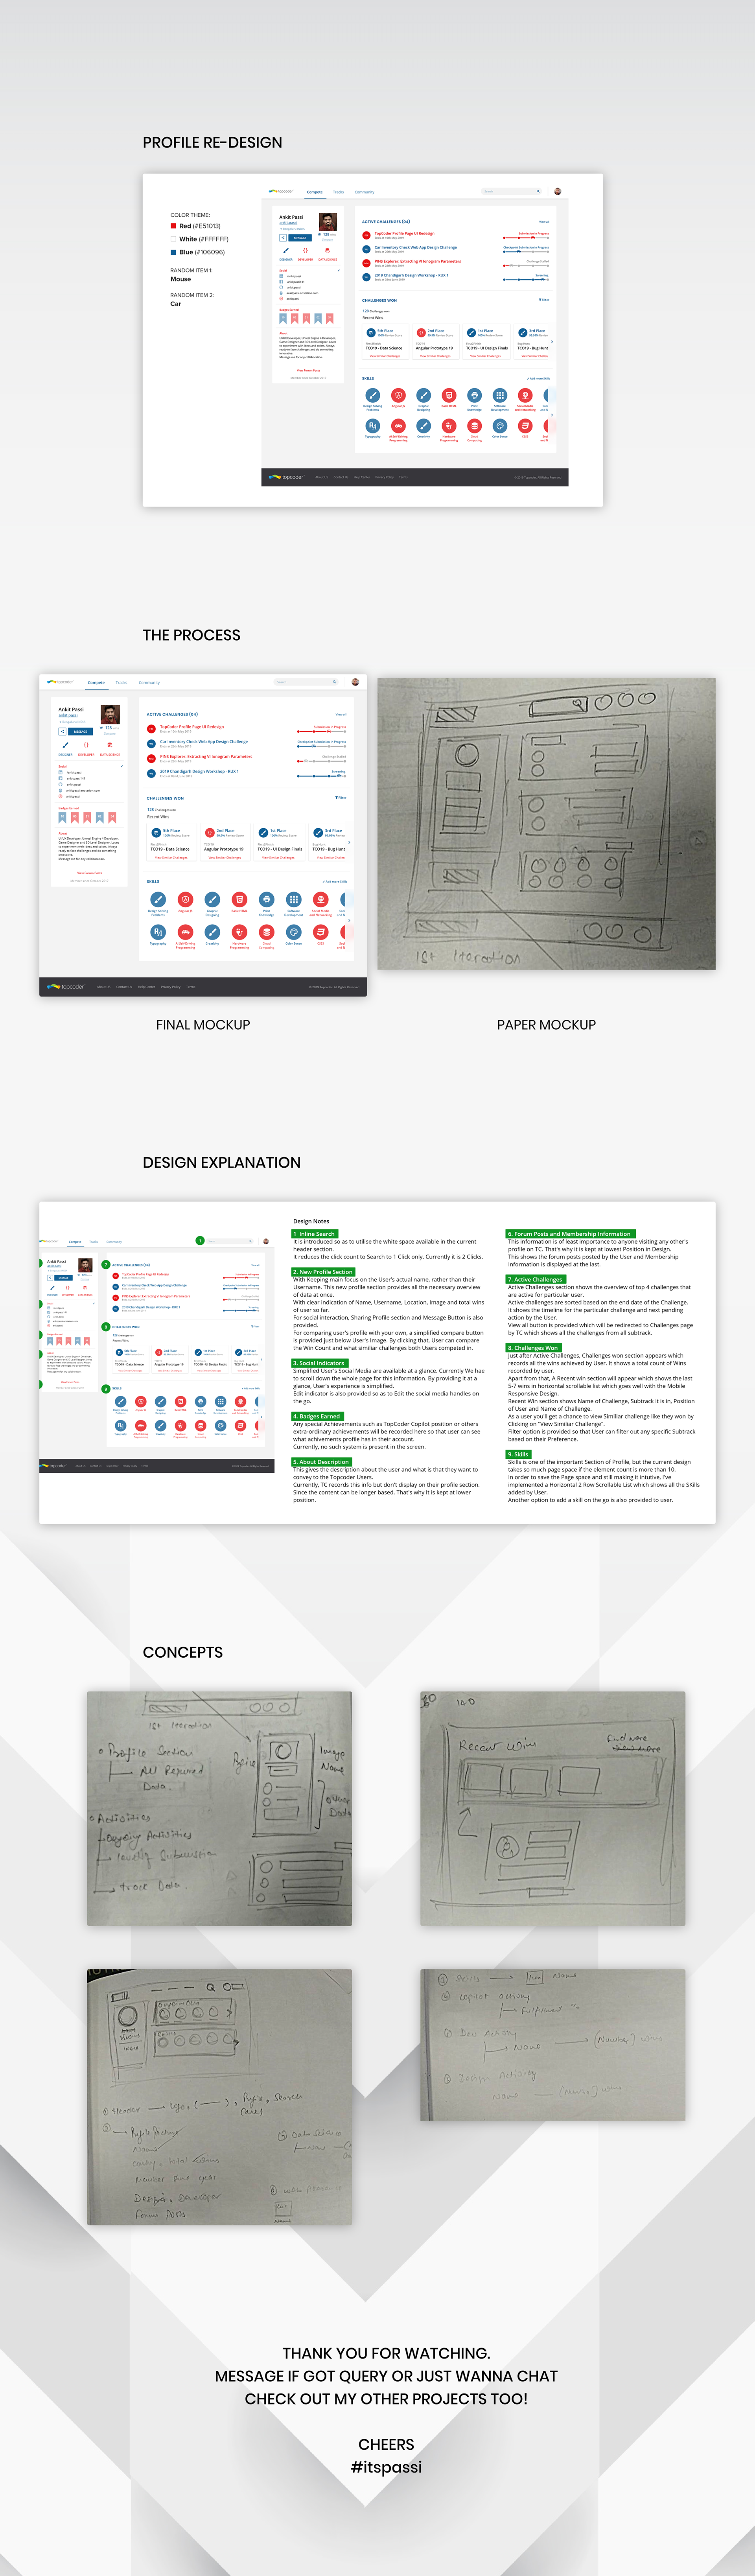 Topcoder Profile Redesign - Design Process